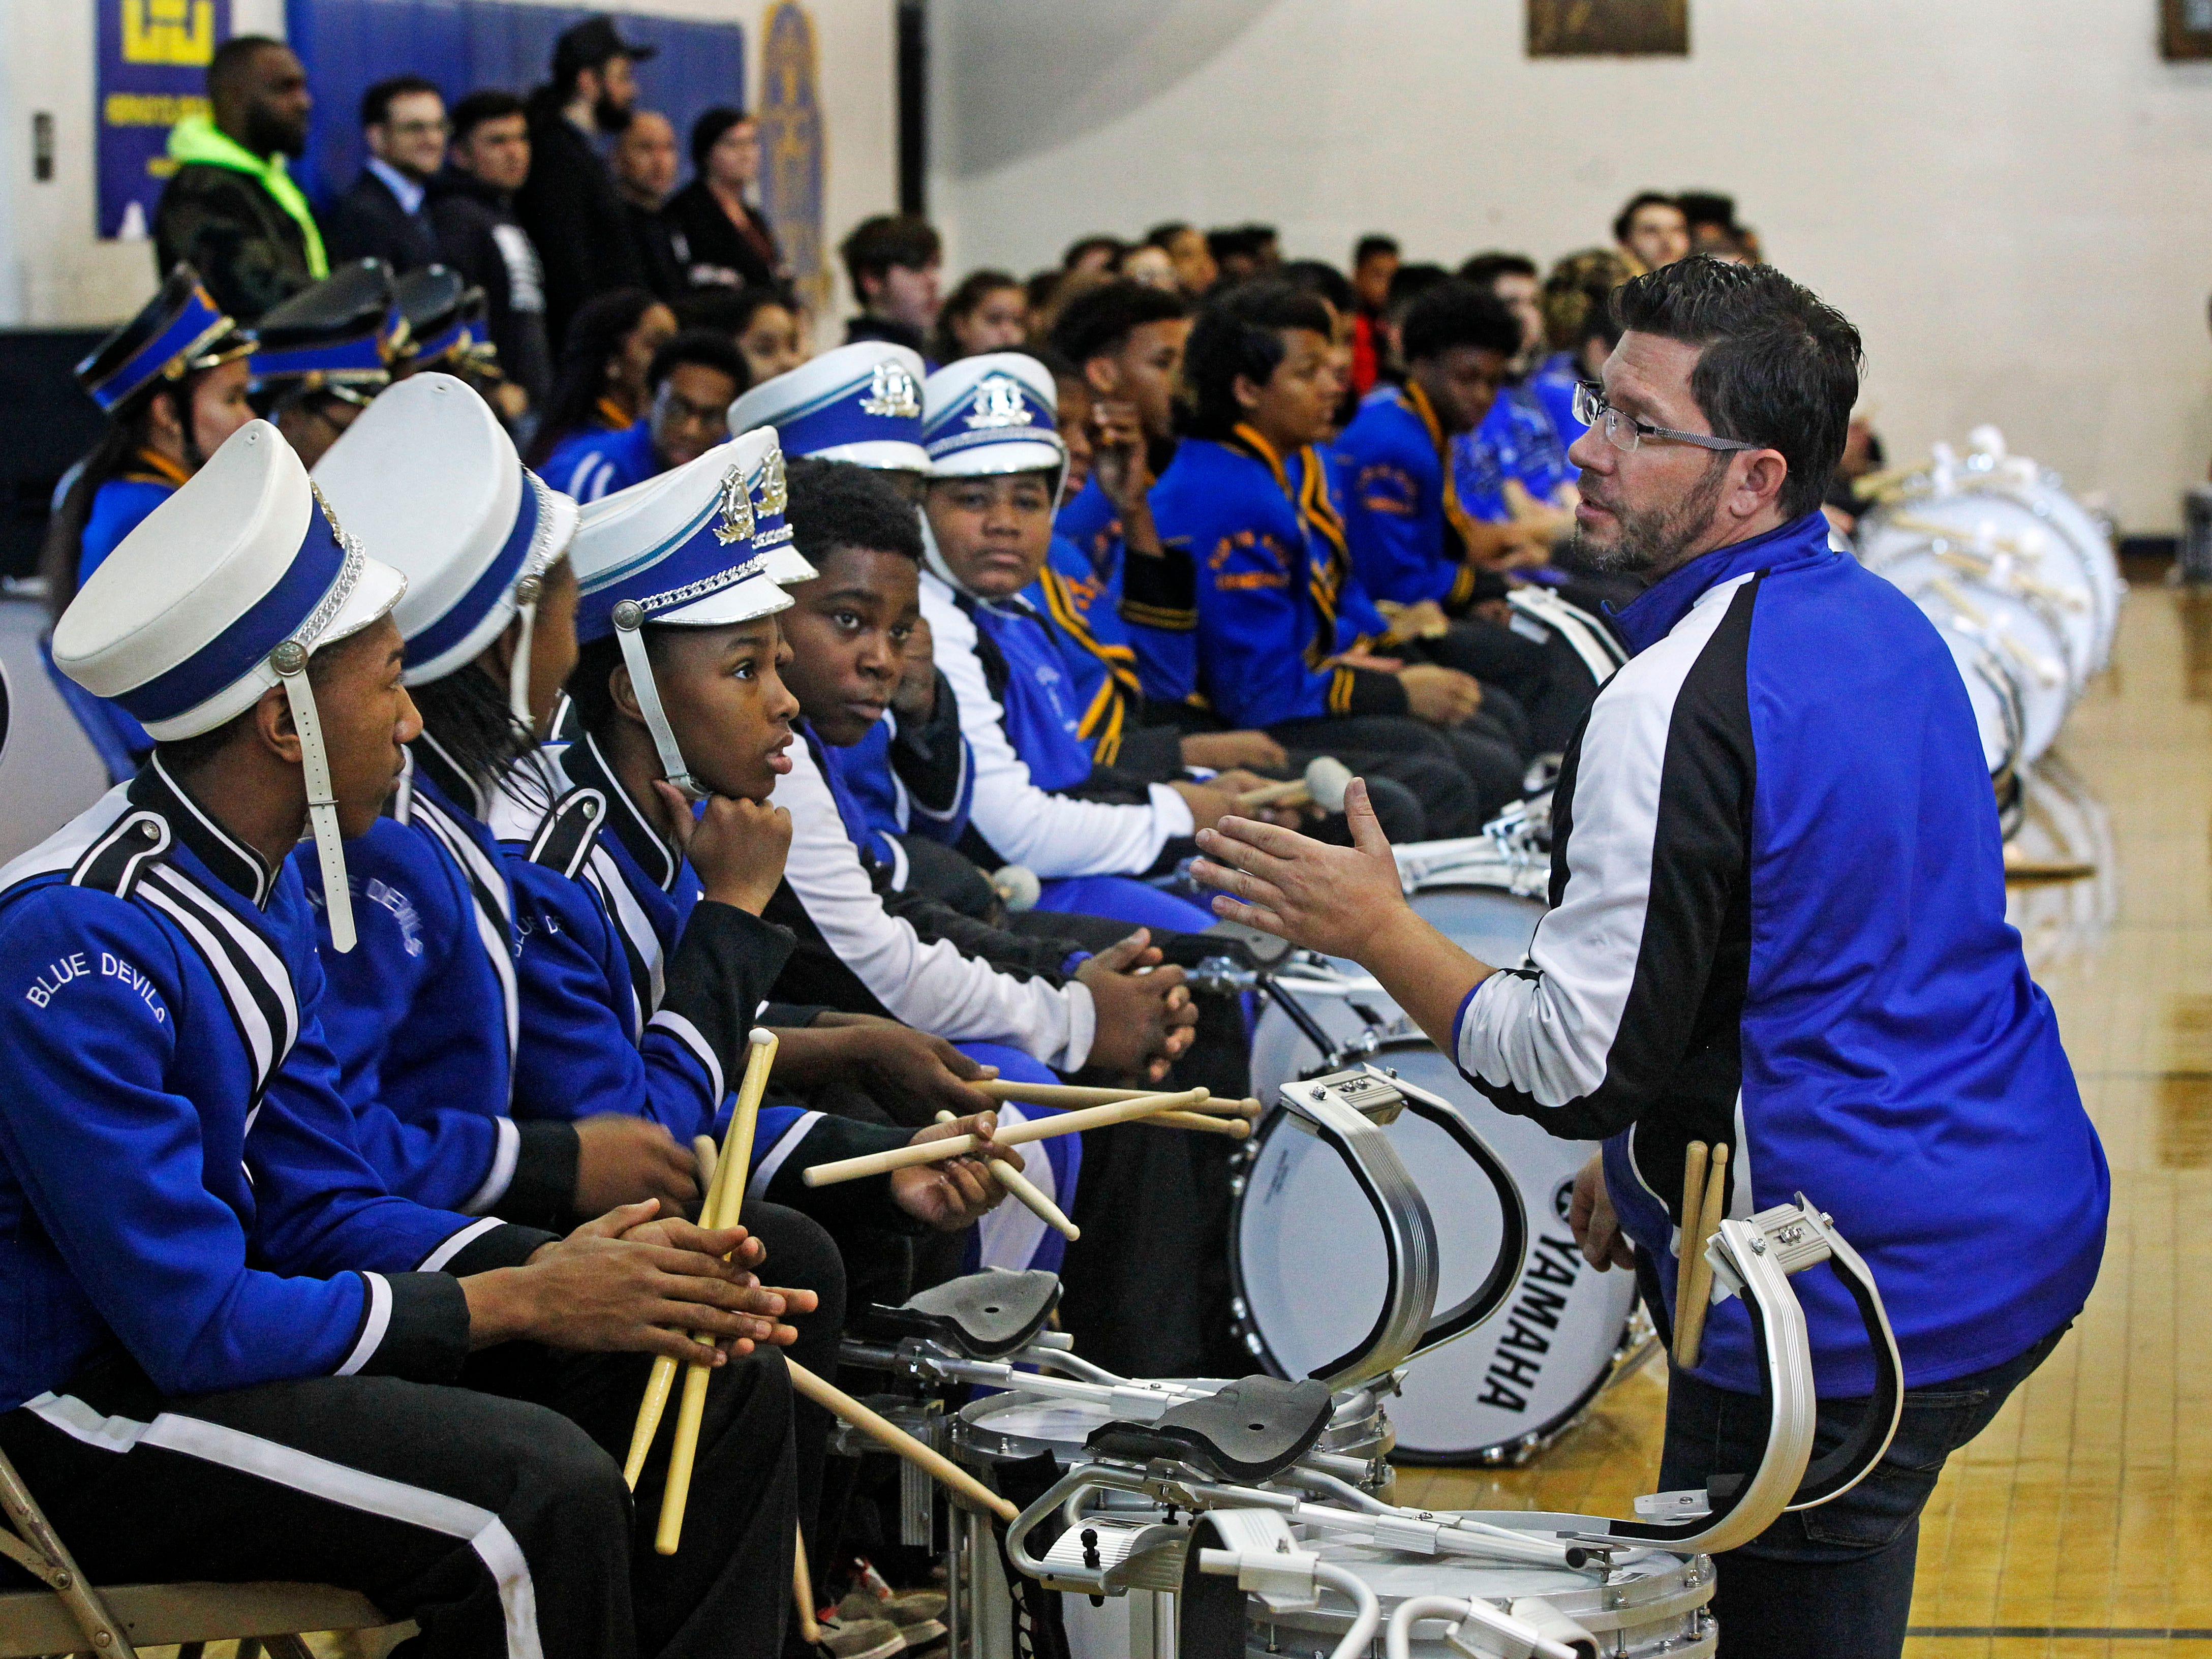 """Paul Braun, co-director of the North Division High School Drumline, left, talks with drumline members before the start of the MPS Hosts City Drumline Competition on Saturday, Dec. 8, 2018 at Rufus King High School. Maleak Taylor, left, listens with other students. """"Most freshmen come in and they act like freshmen. You don't see that from Maleak. He's a real leader and we (the drum line) will go as he goes. He's the leader,""""  said Braun."""